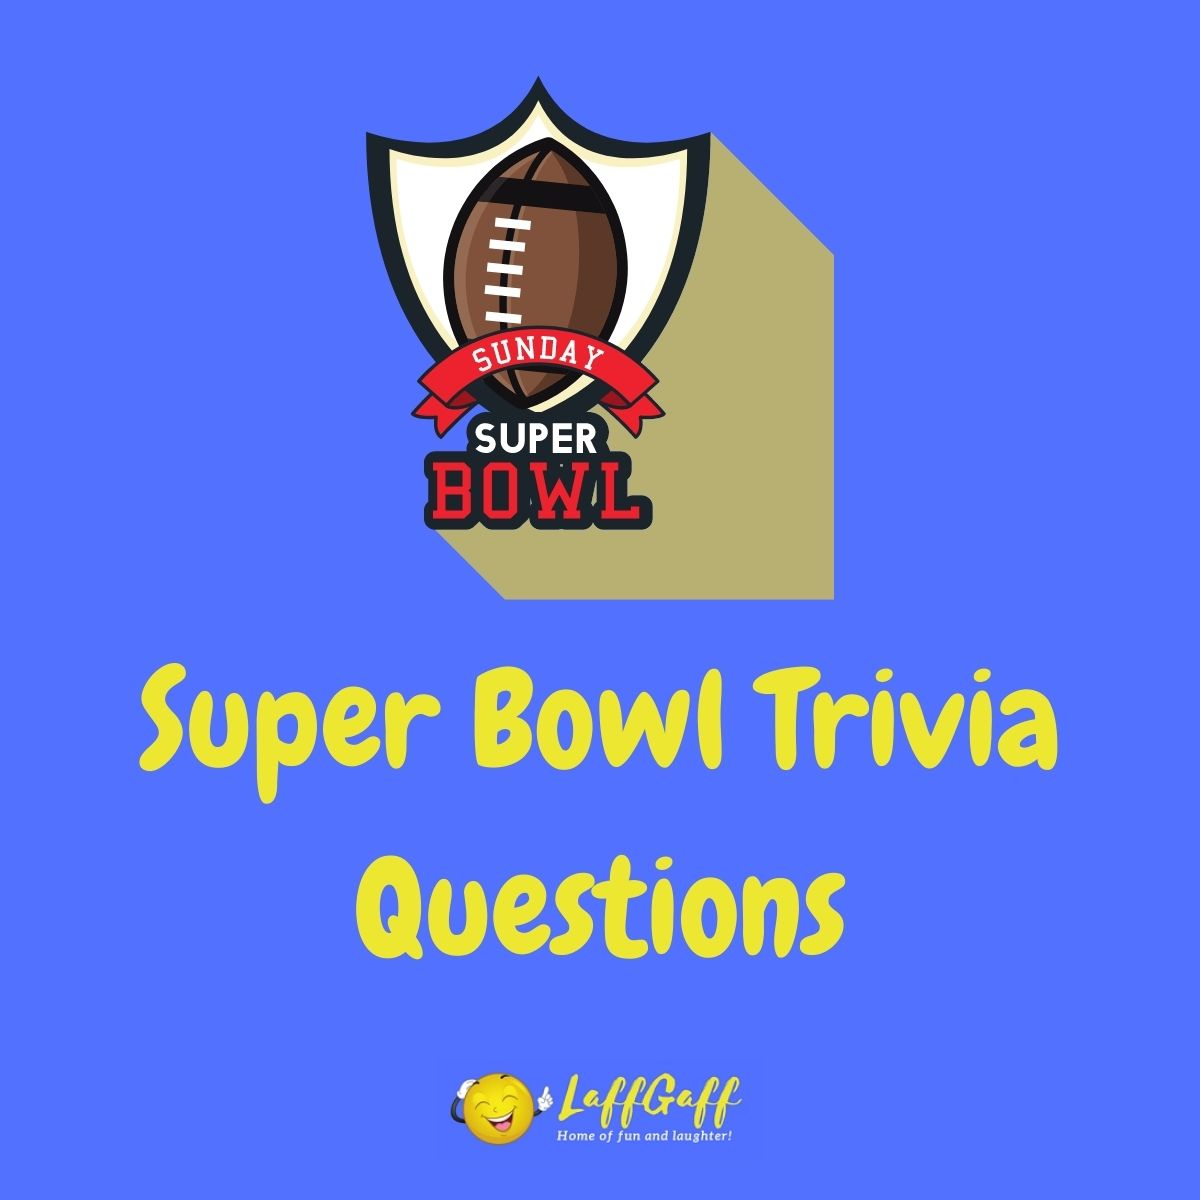 Featured image for a page of Super Bowl trivia questions and answers.